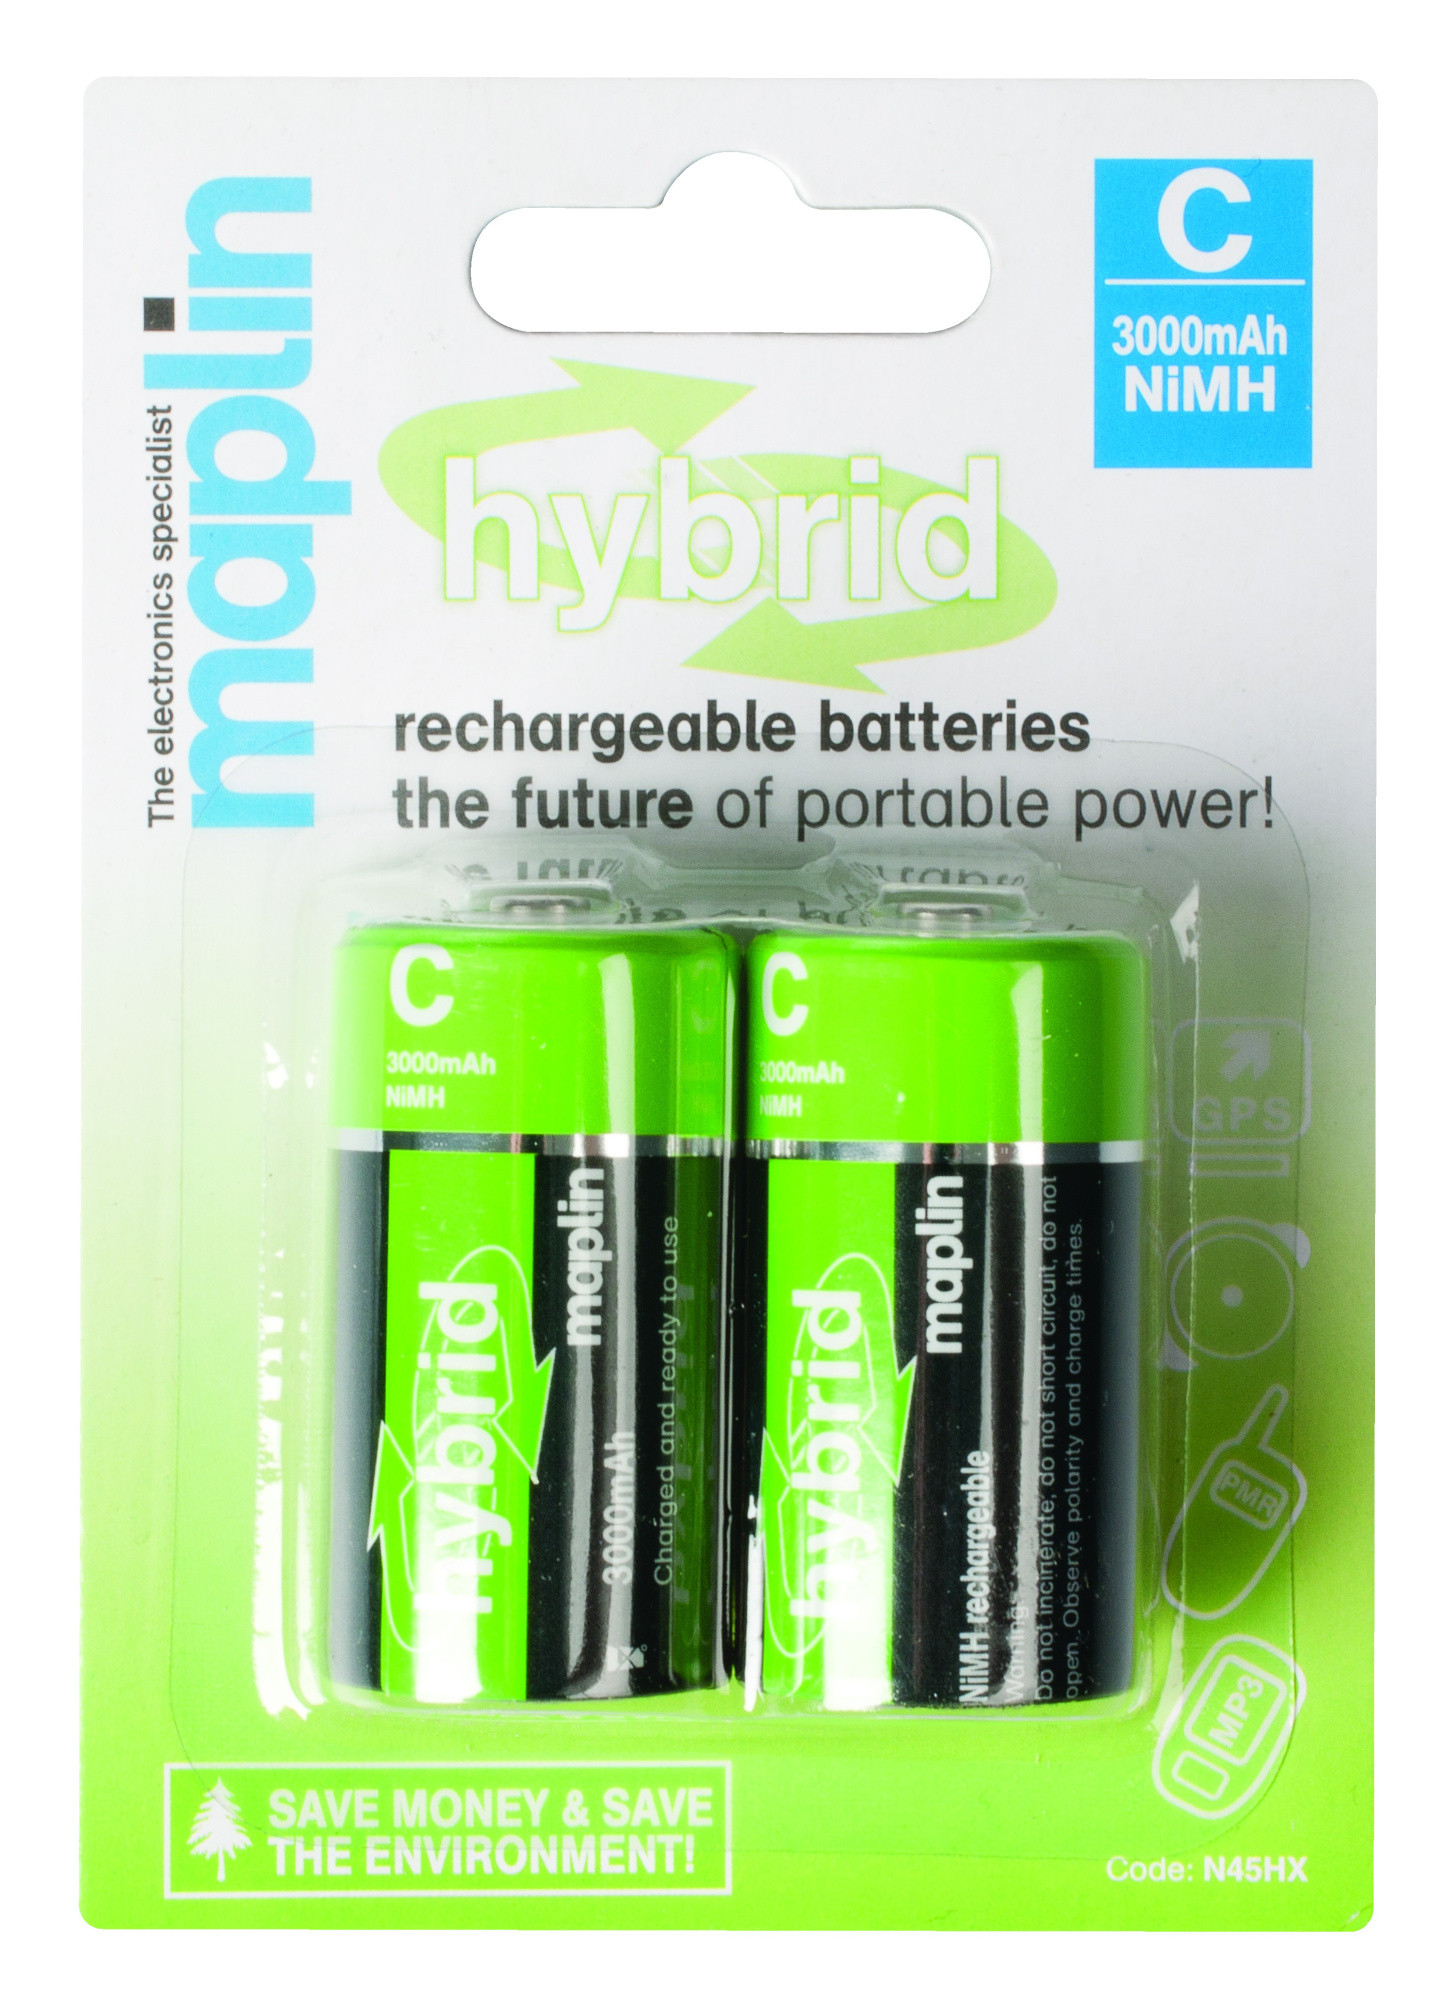 maplin hybrid rechargeable c battery 3000mah 2 pack ebay. Black Bedroom Furniture Sets. Home Design Ideas